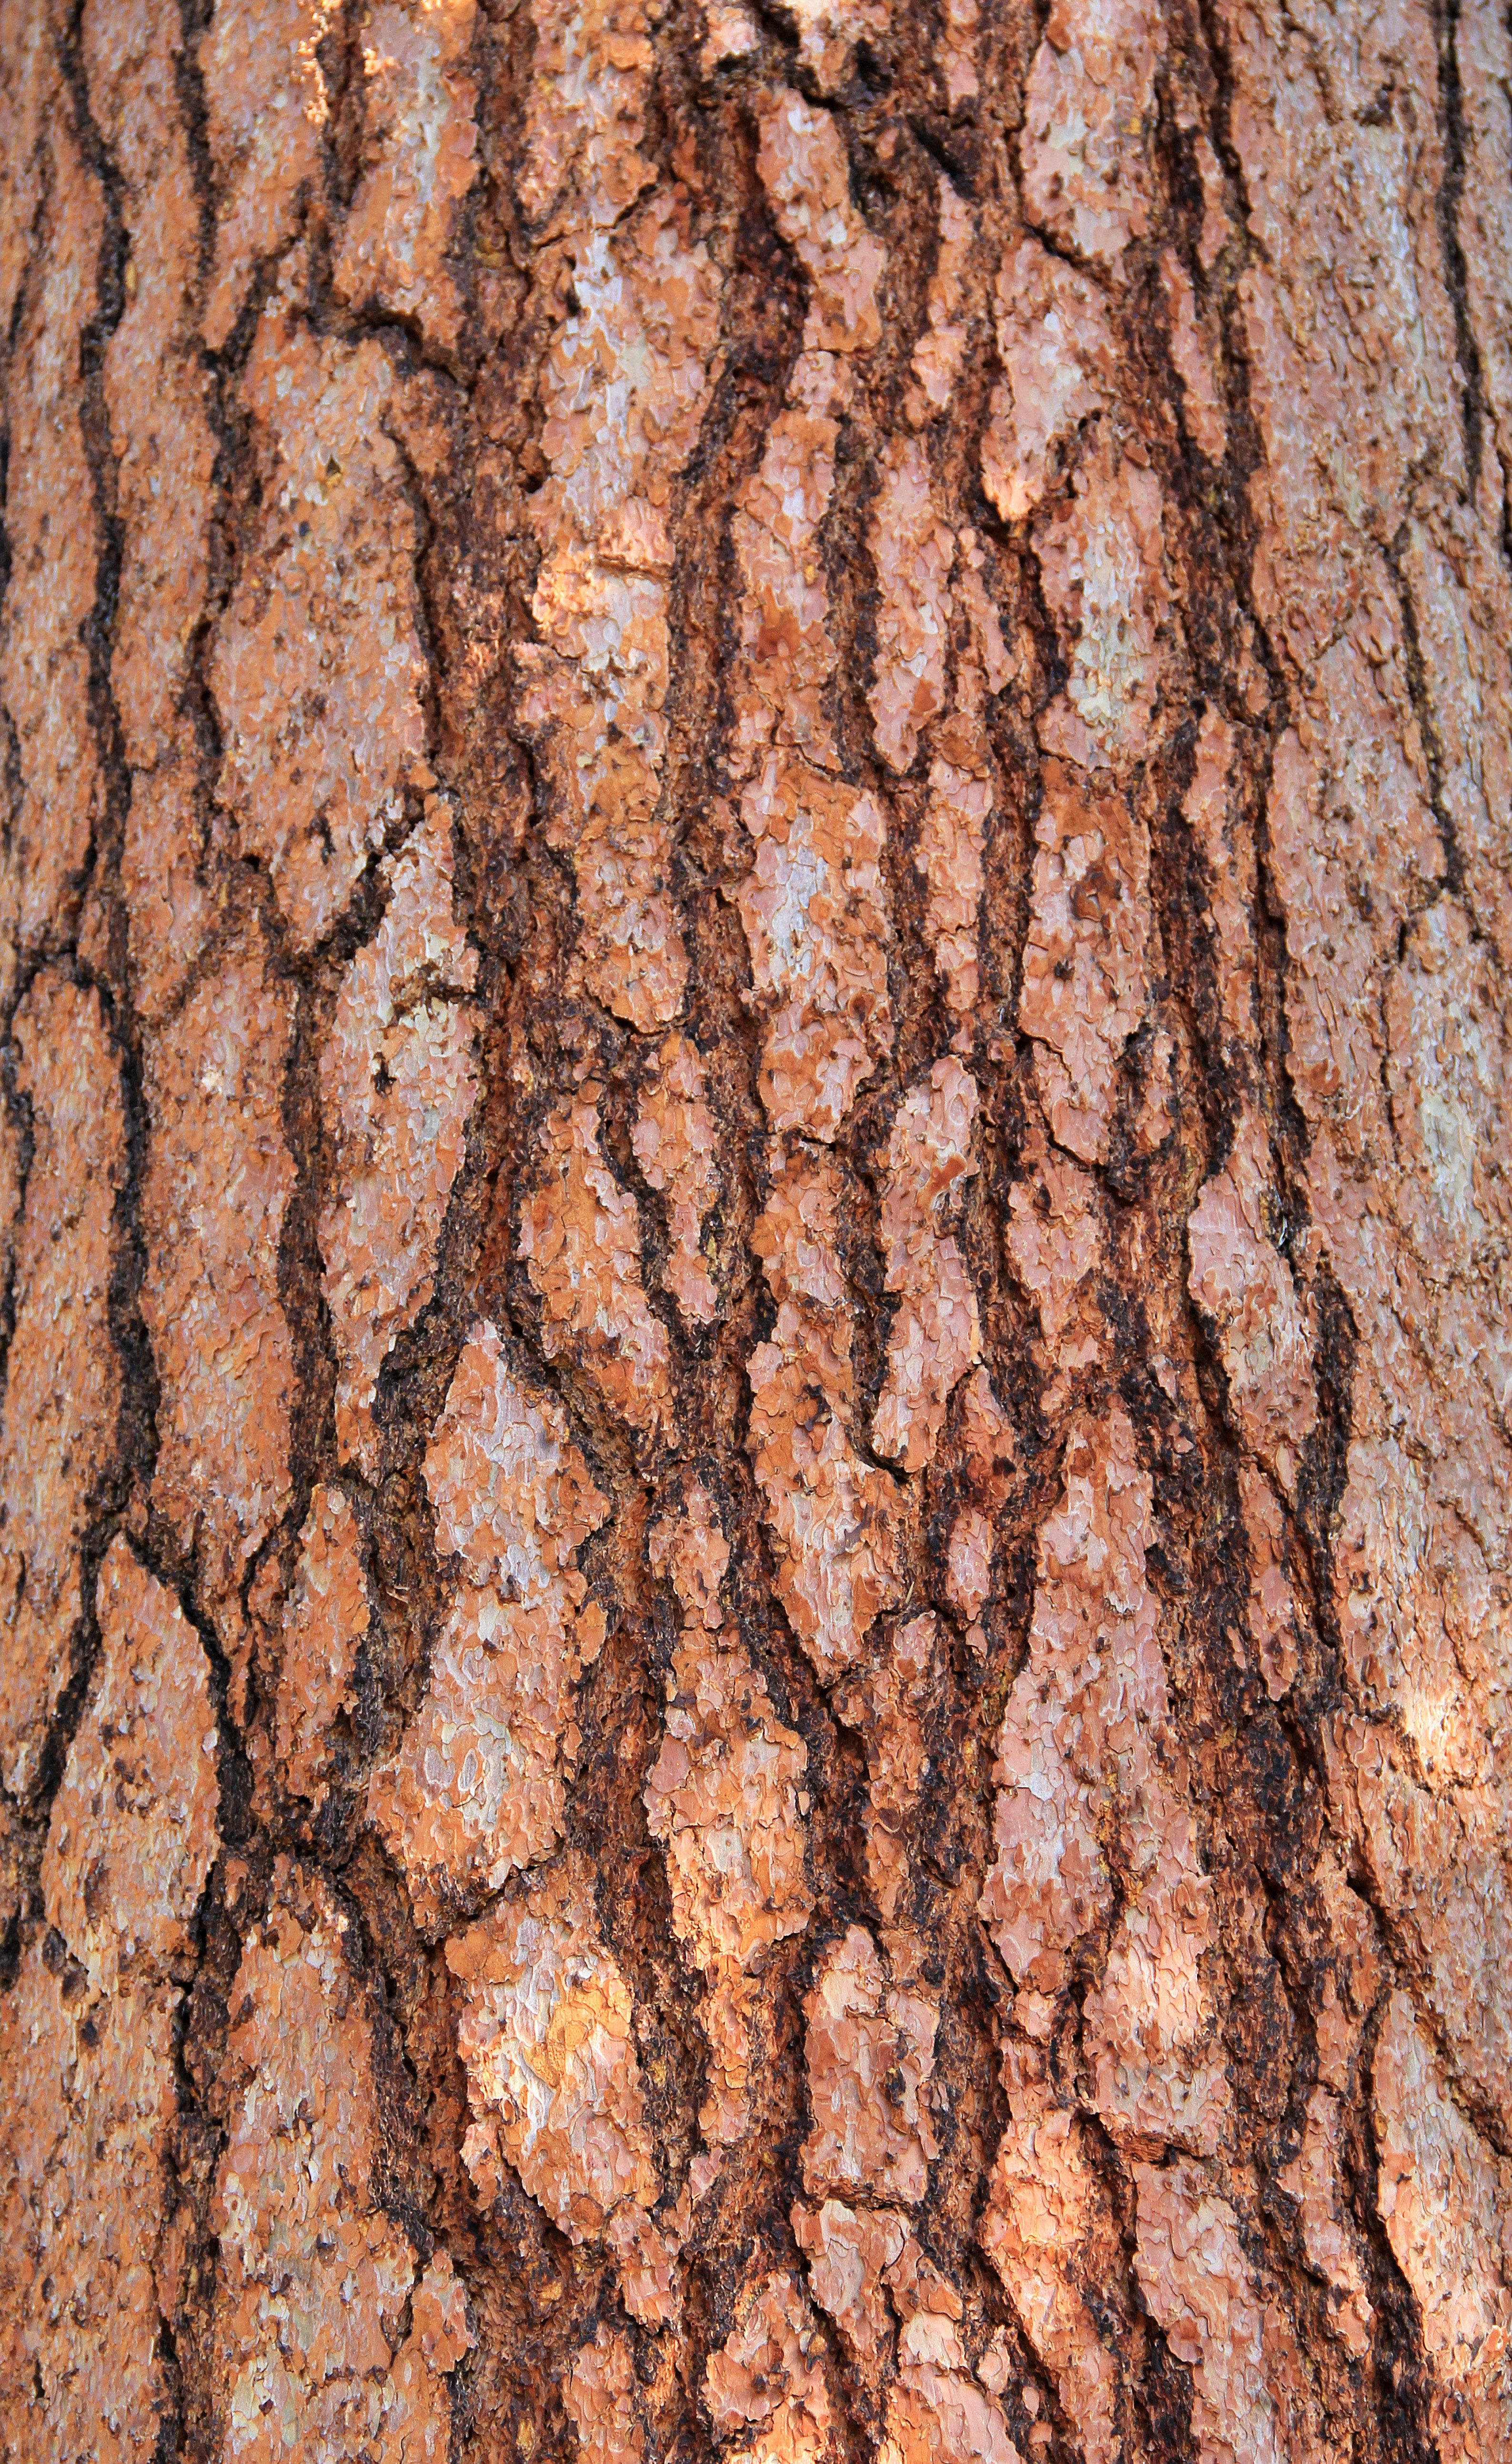 Wood Texture Tree Bark Large Red Wood Pieces Wooden Stock Photo